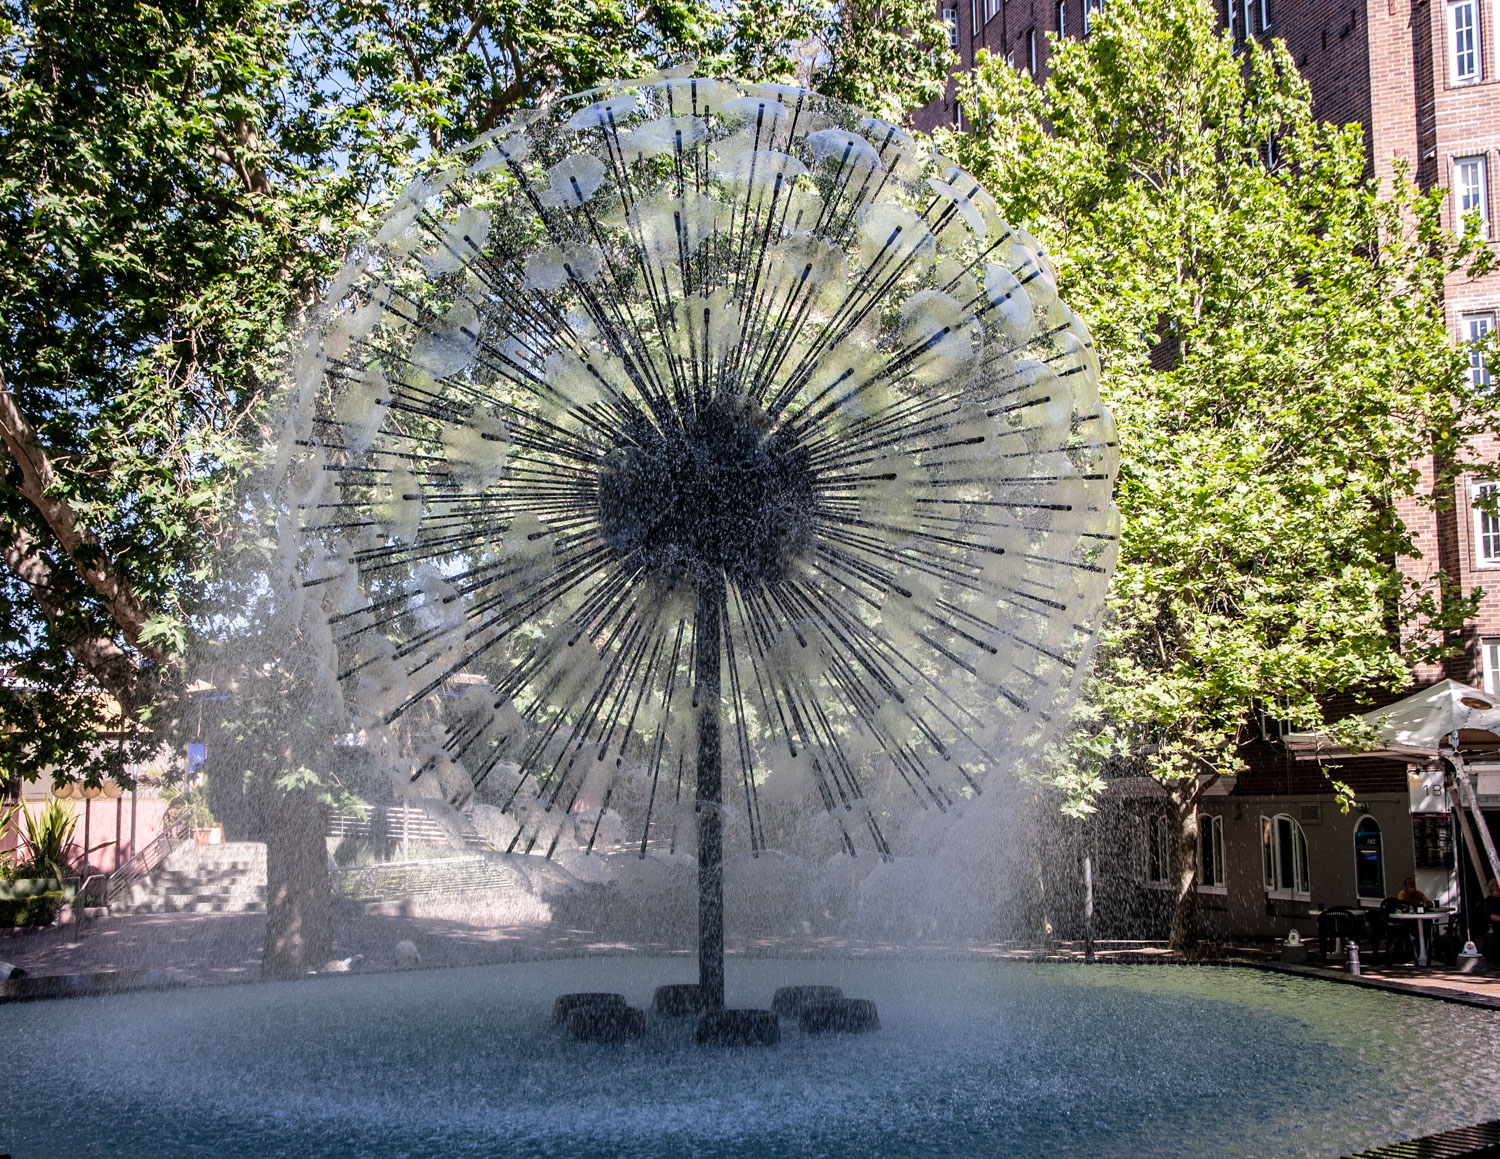 The fountain in Kings Cross